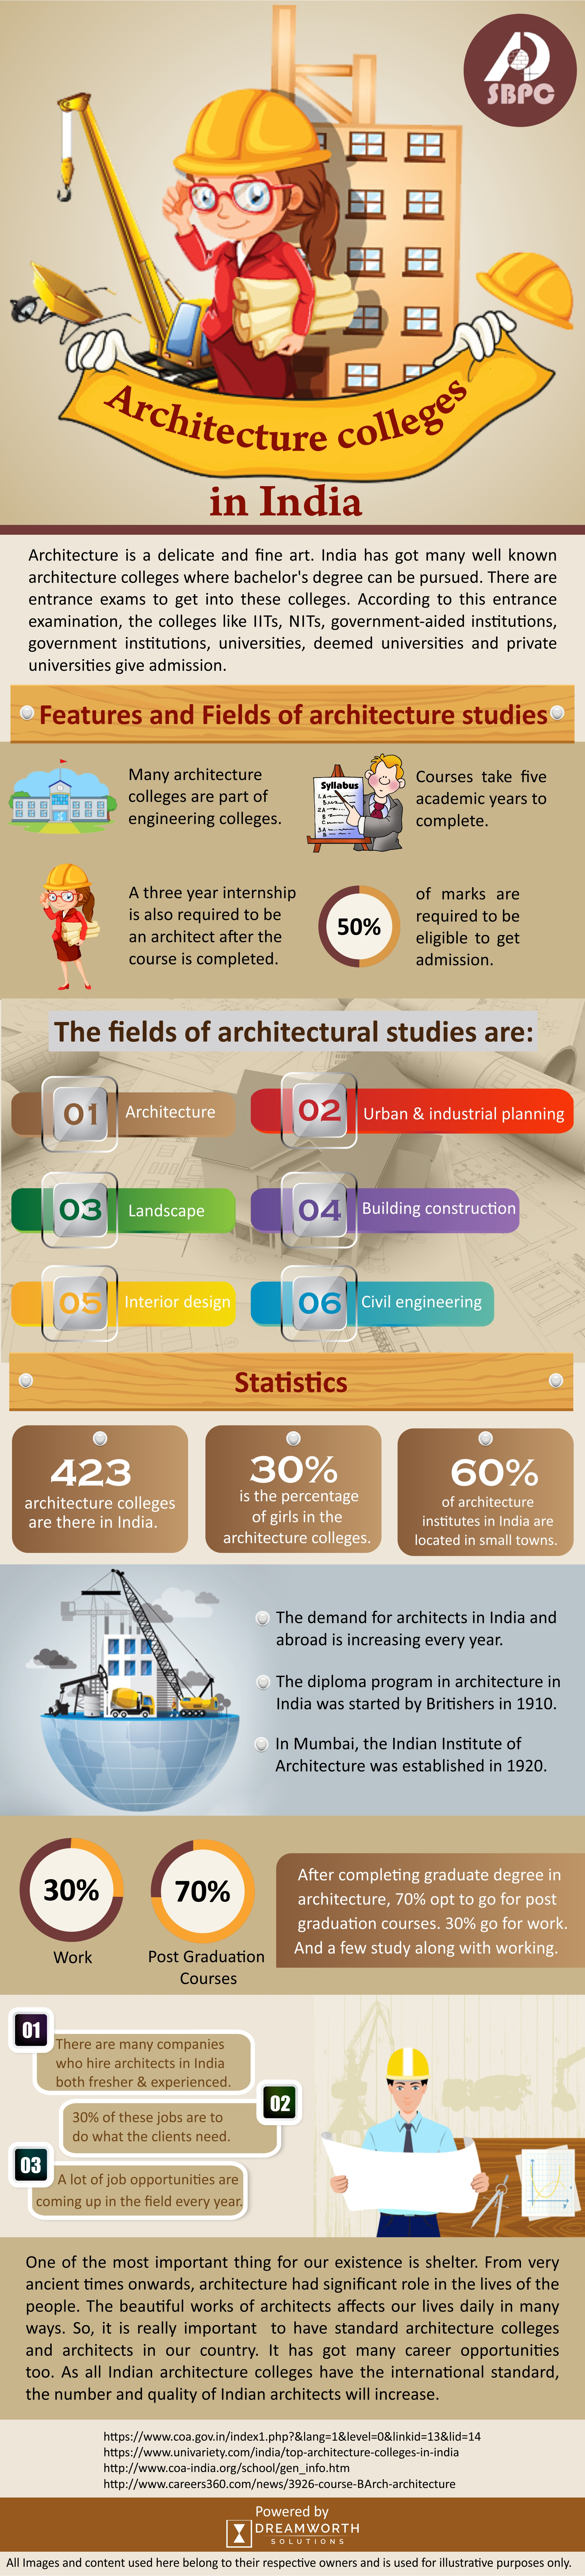 The architecture behind architecture colleges